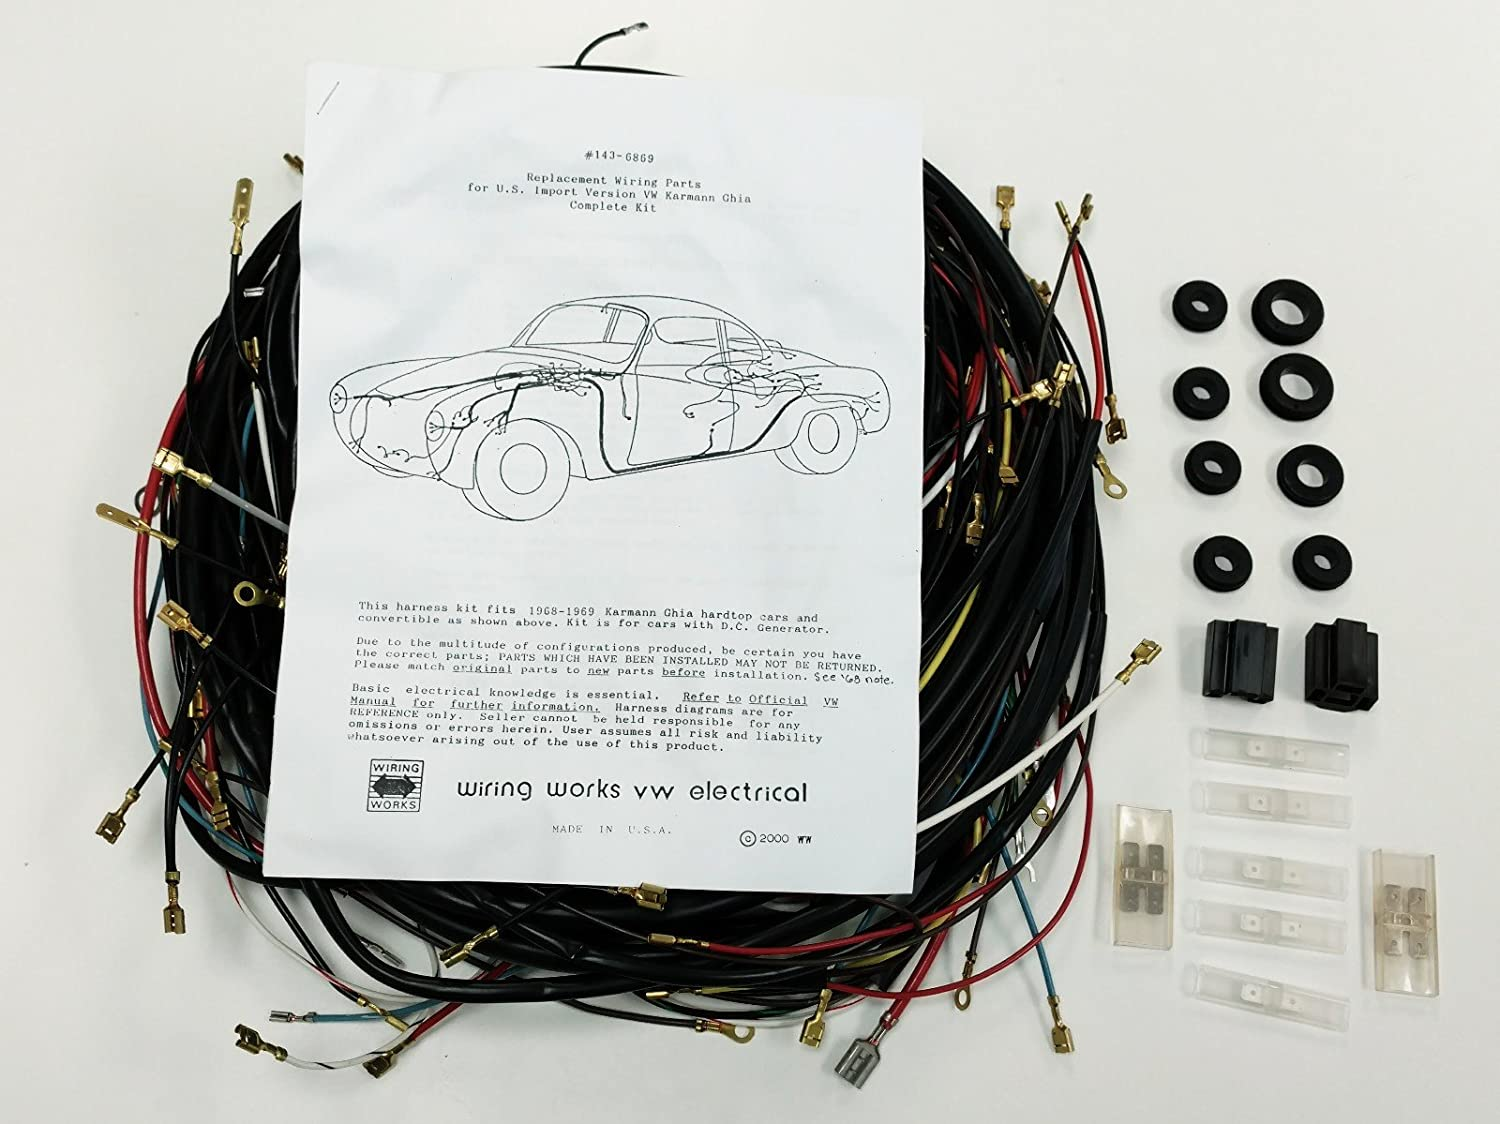 Amazon.com: 1968-1969 ALL Karmann Ghia VW COMPLETE Wiring Works Wire Harness  Kit - USA MADE: Automotive